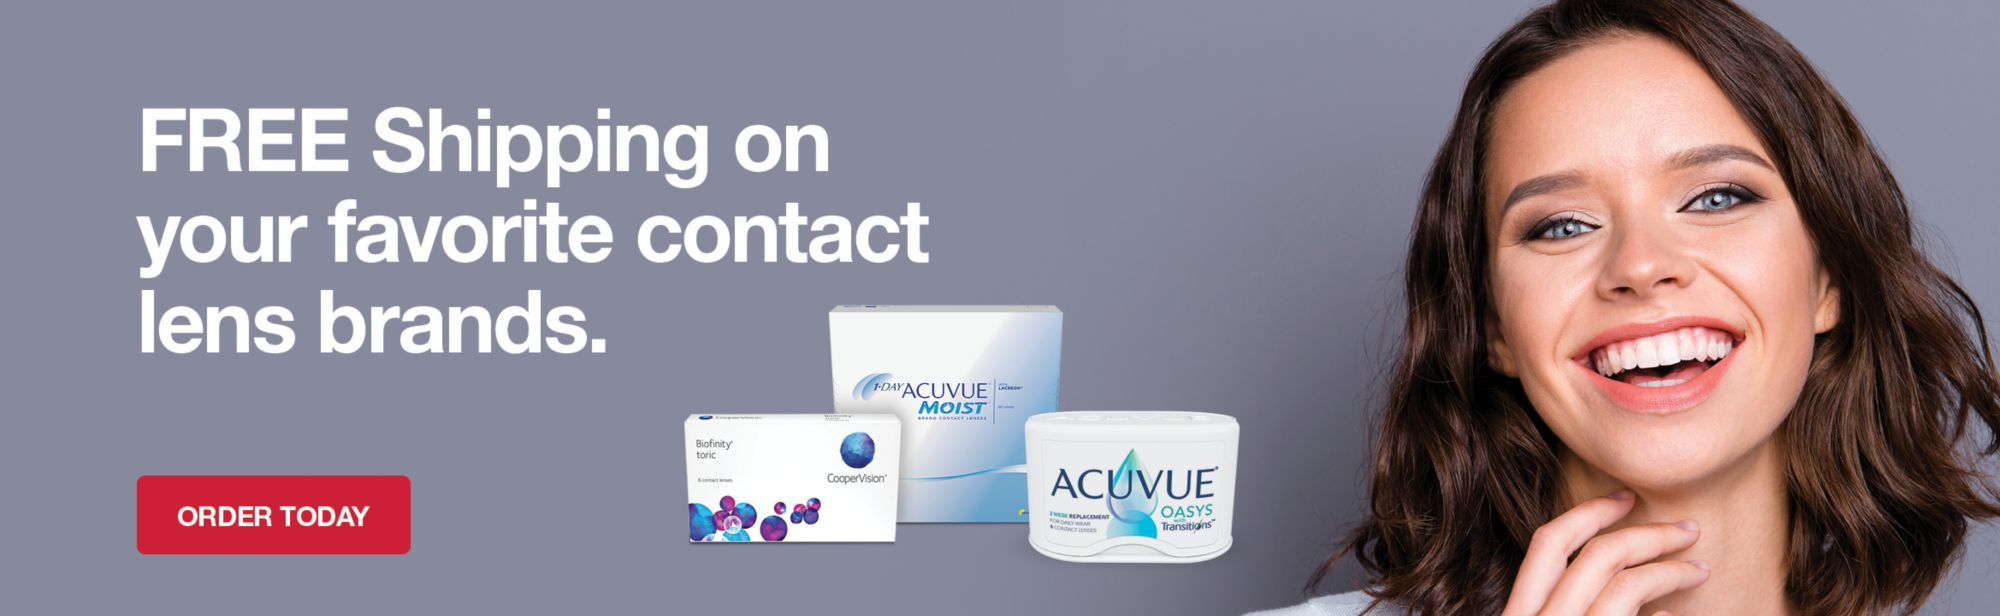 Free shipping on your favorite contact lens brands. Order today.